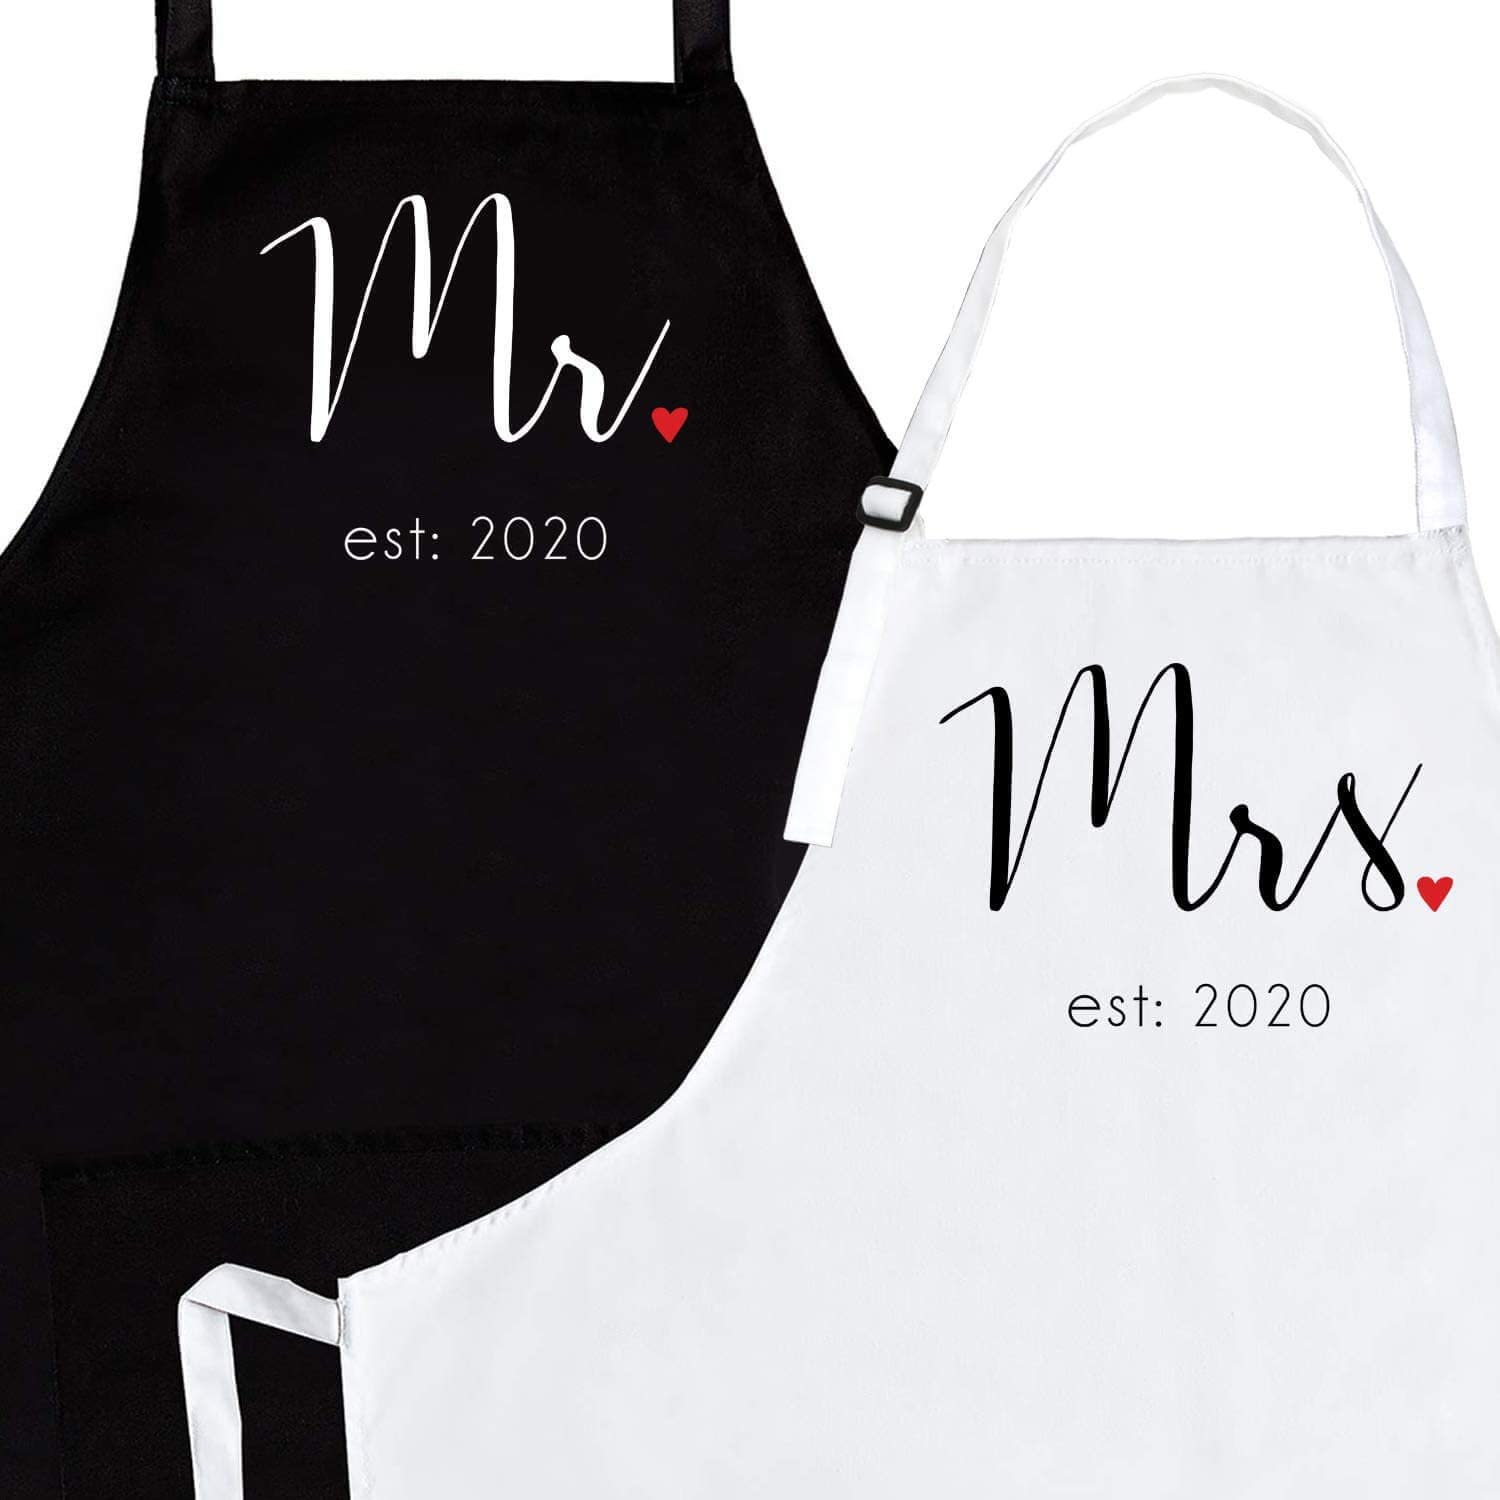 This image is a pair of apron in black and white with Mr. and Mrs. markings at the front.